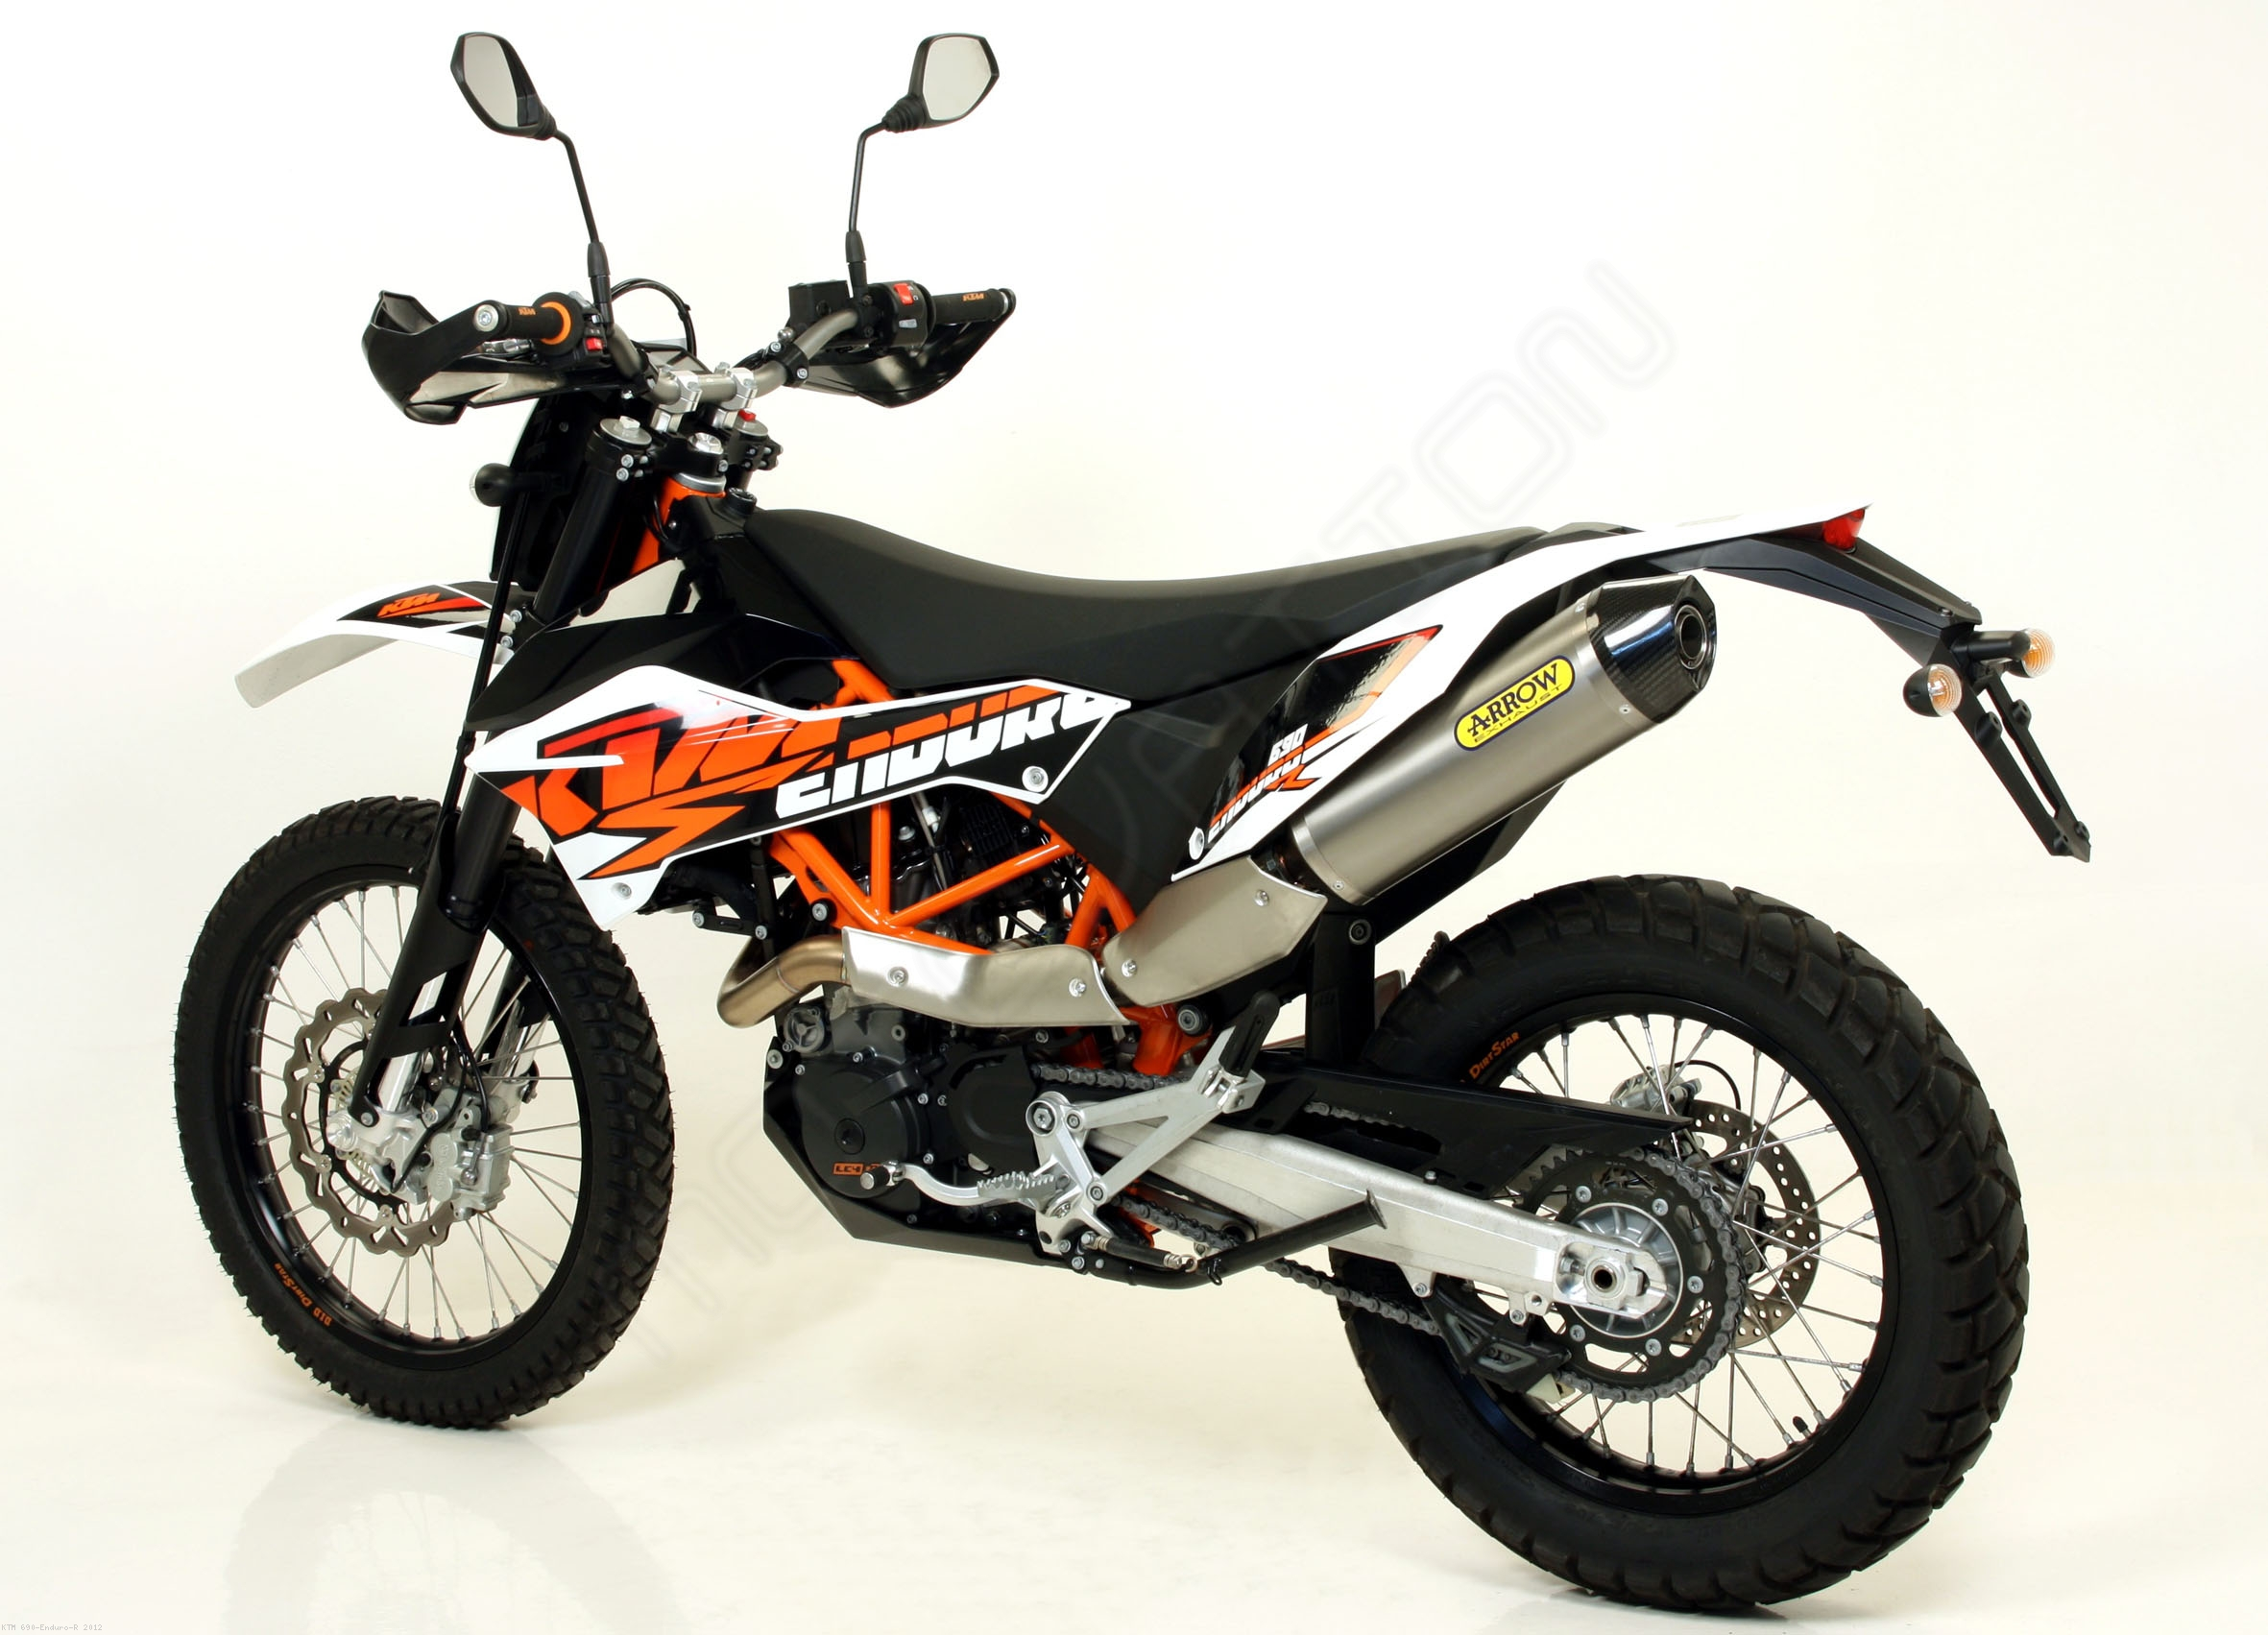 race tech exhaust by arrow ktm 690 enduro r 2012. Black Bedroom Furniture Sets. Home Design Ideas